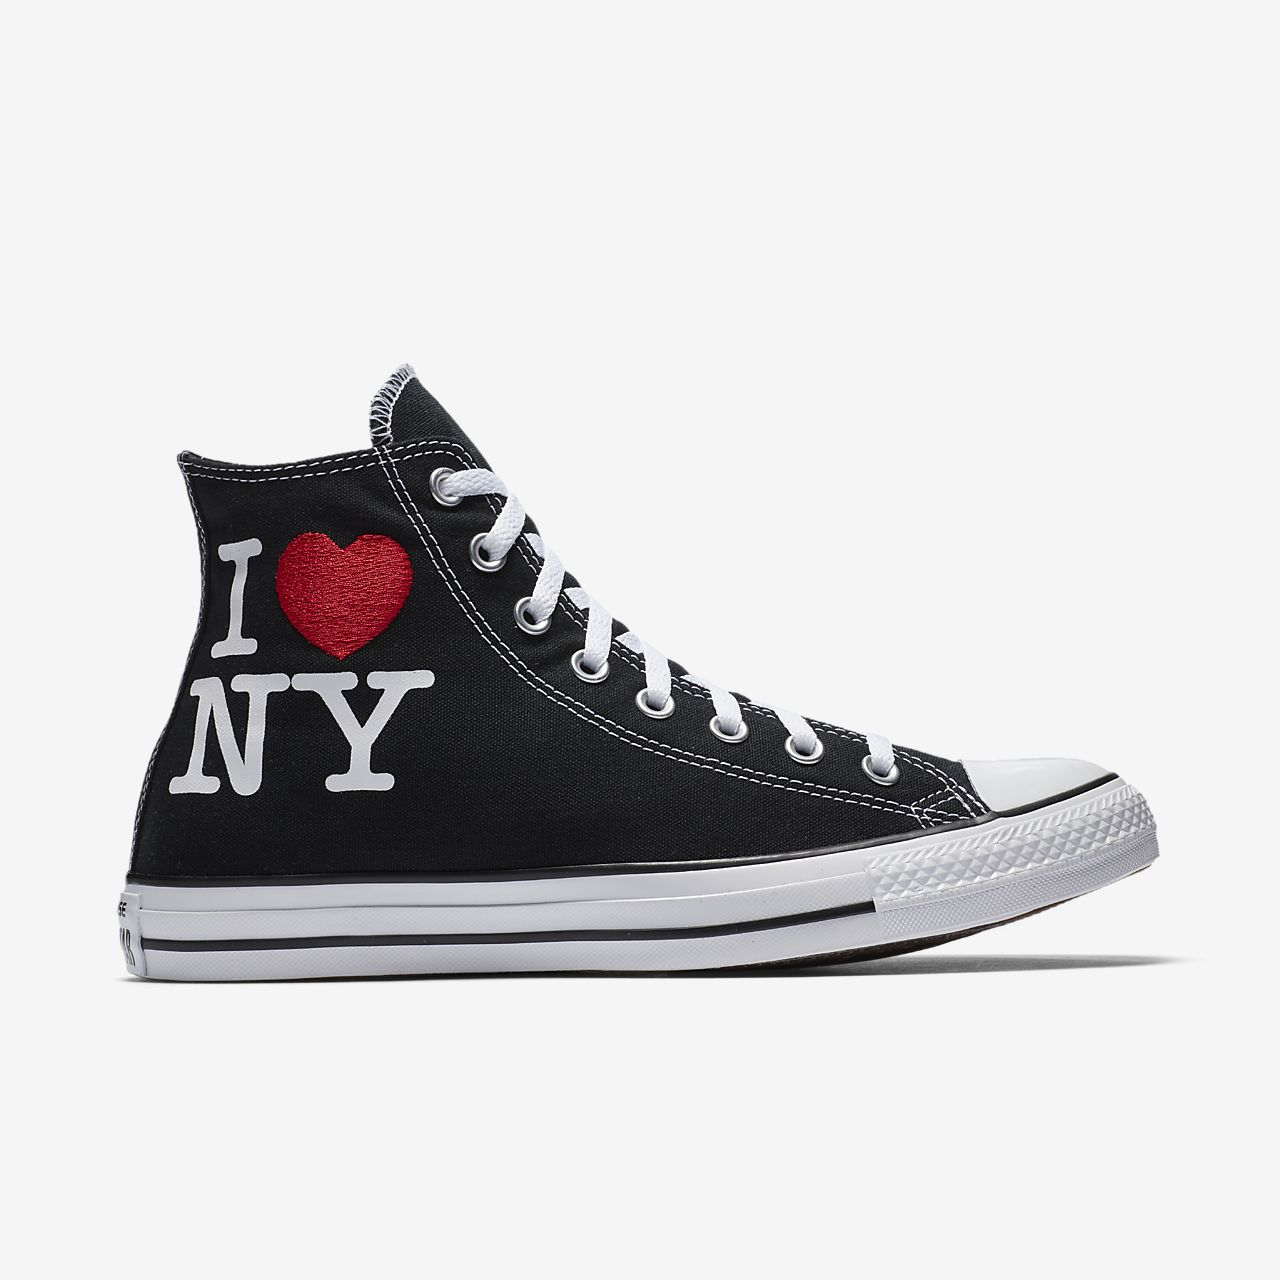 ... Converse Chuck Taylor All Star I Love NY High Top Unisex Shoe